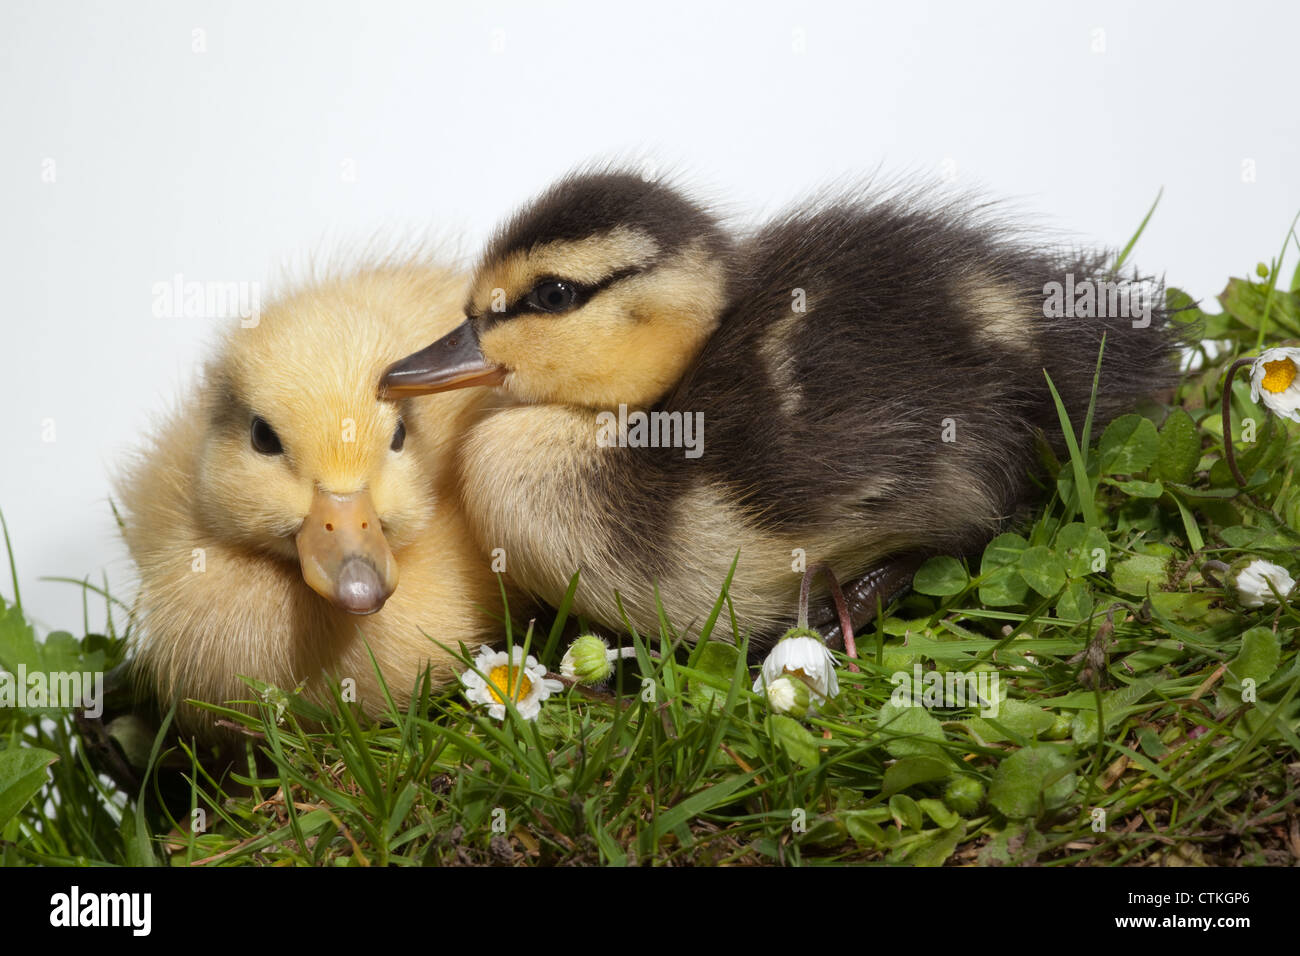 Ducklings (Anas platyrhynchos). Siblings, from same clutch of eggs and parentage, producing 'normal' colour - Stock Image